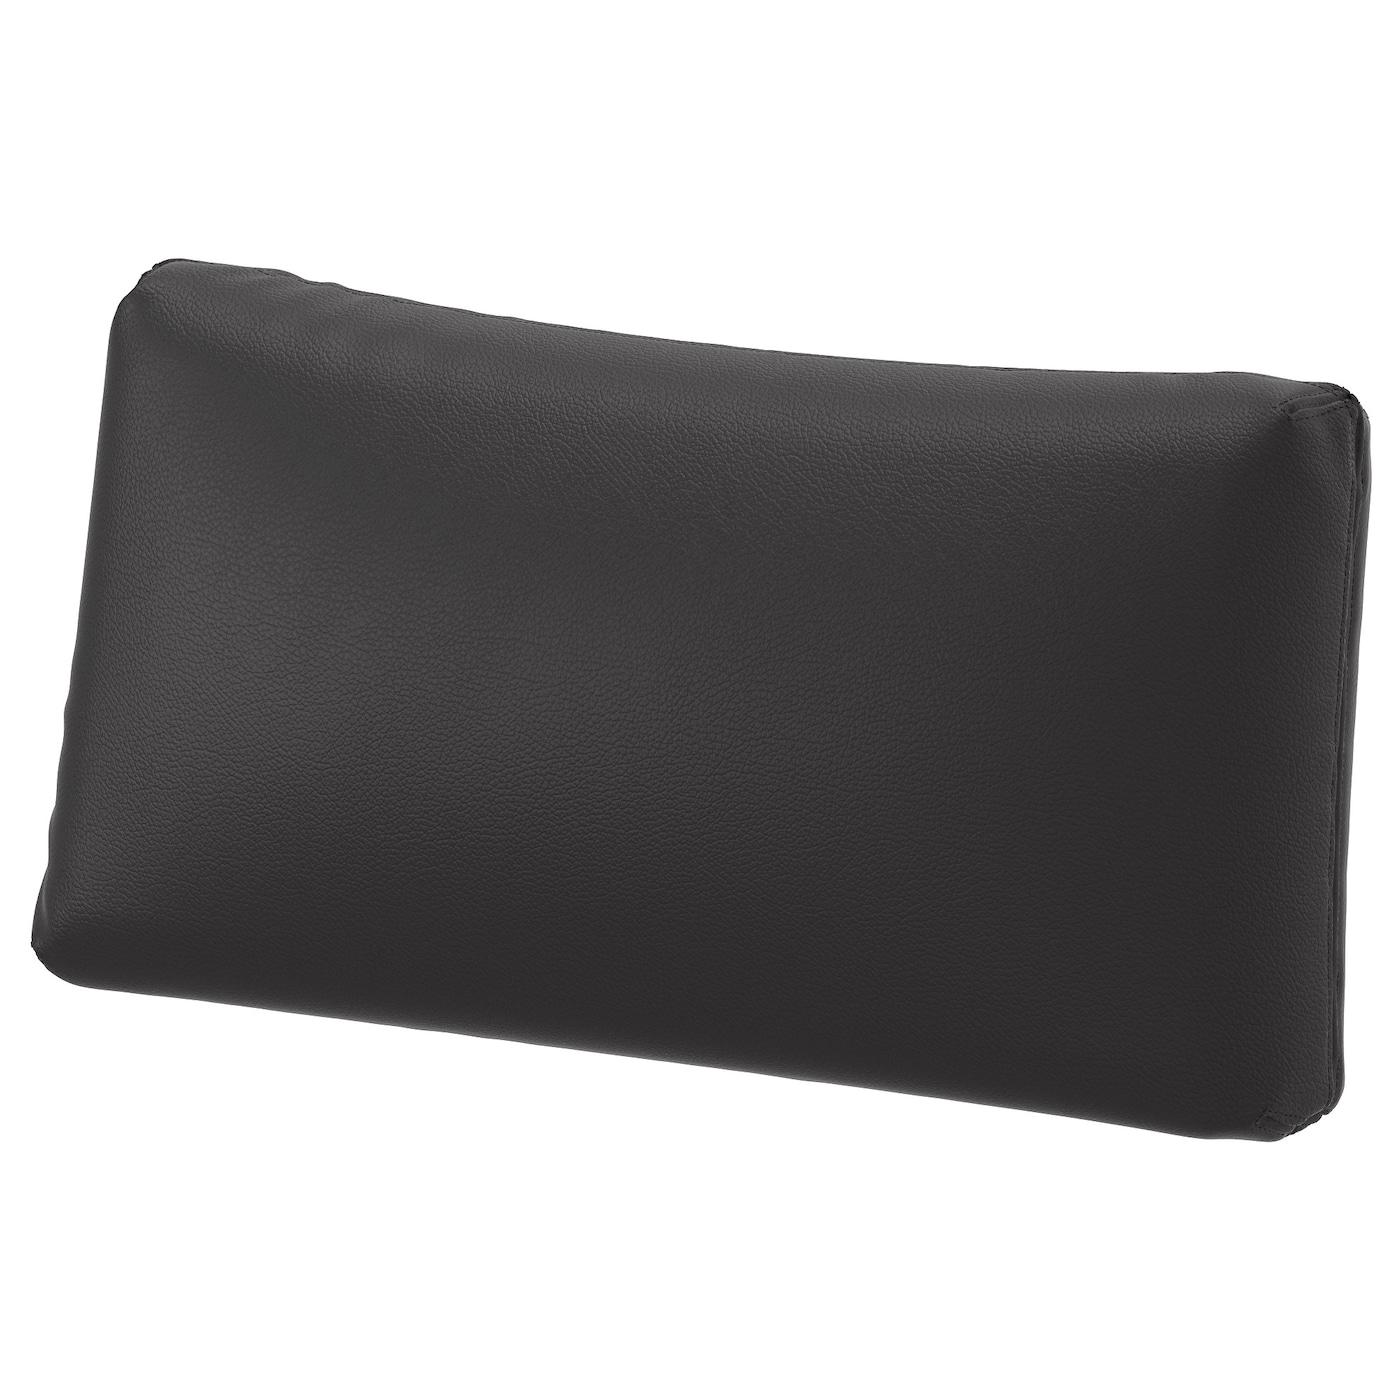 IKEA VALLENTUNA back cushion